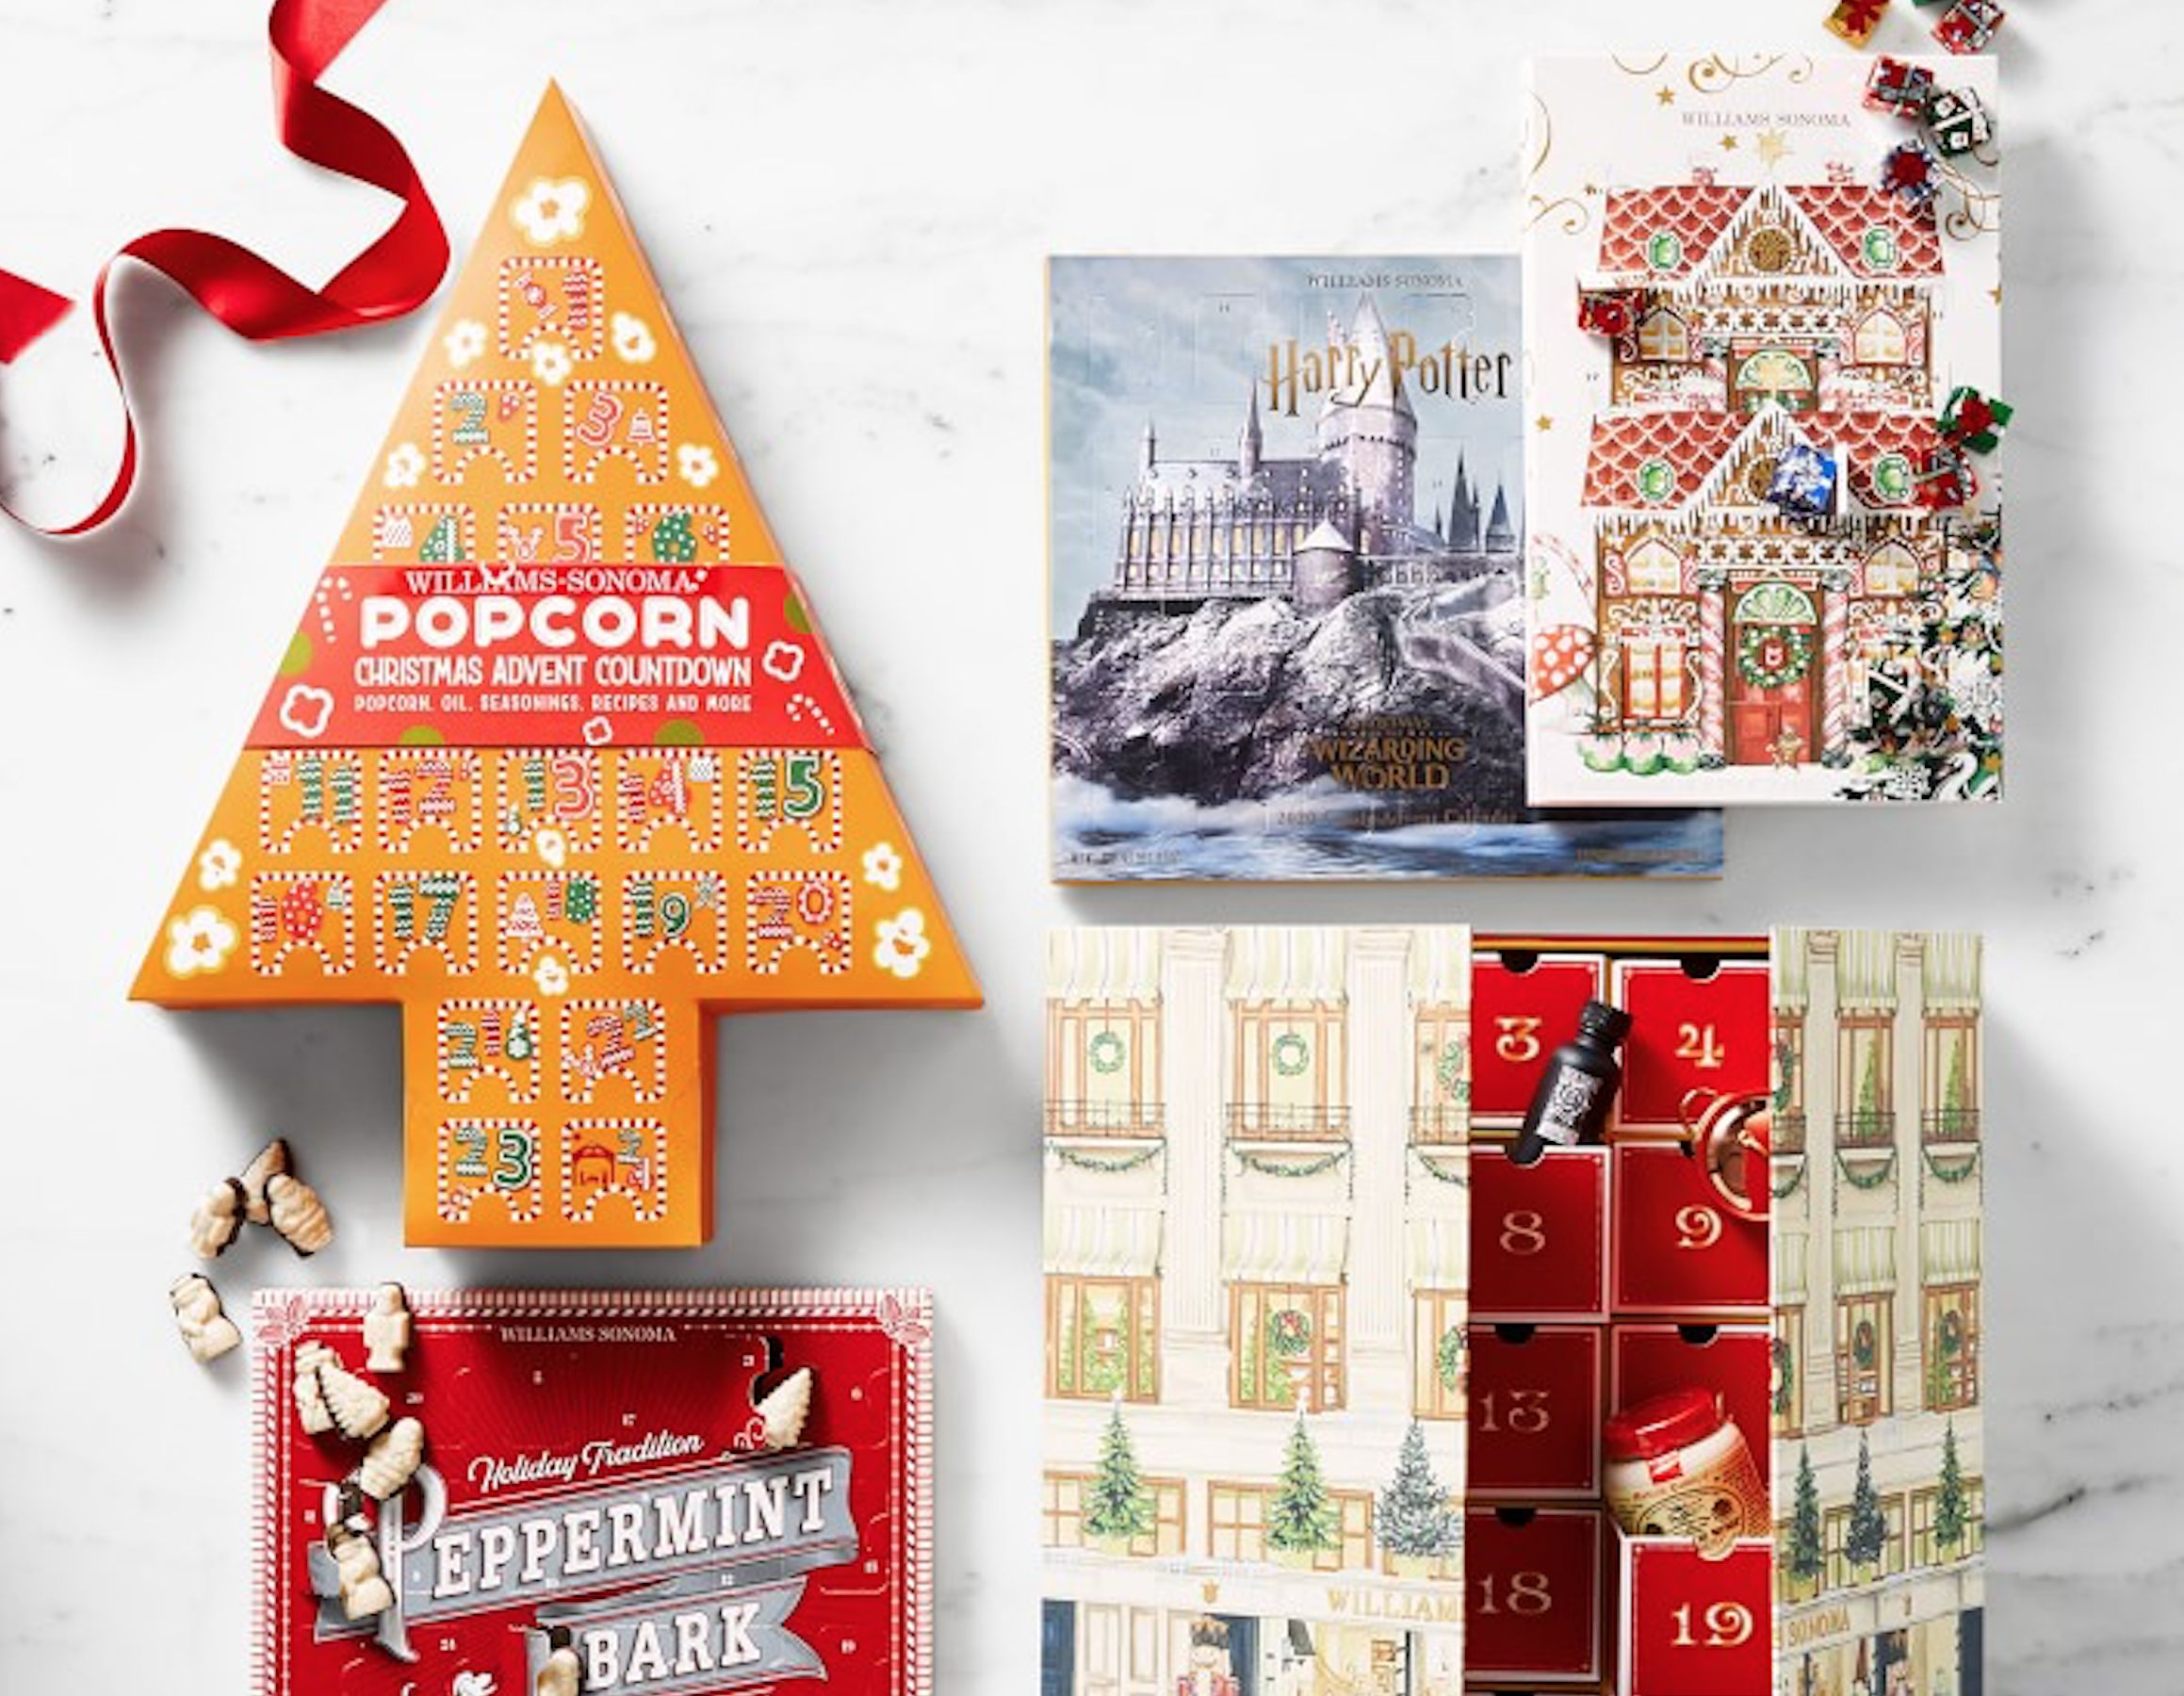 2021 Christmas Candy Countdown Calendar 7 Foodie Advent Calendars To Snack On While Counting Down To Christmas